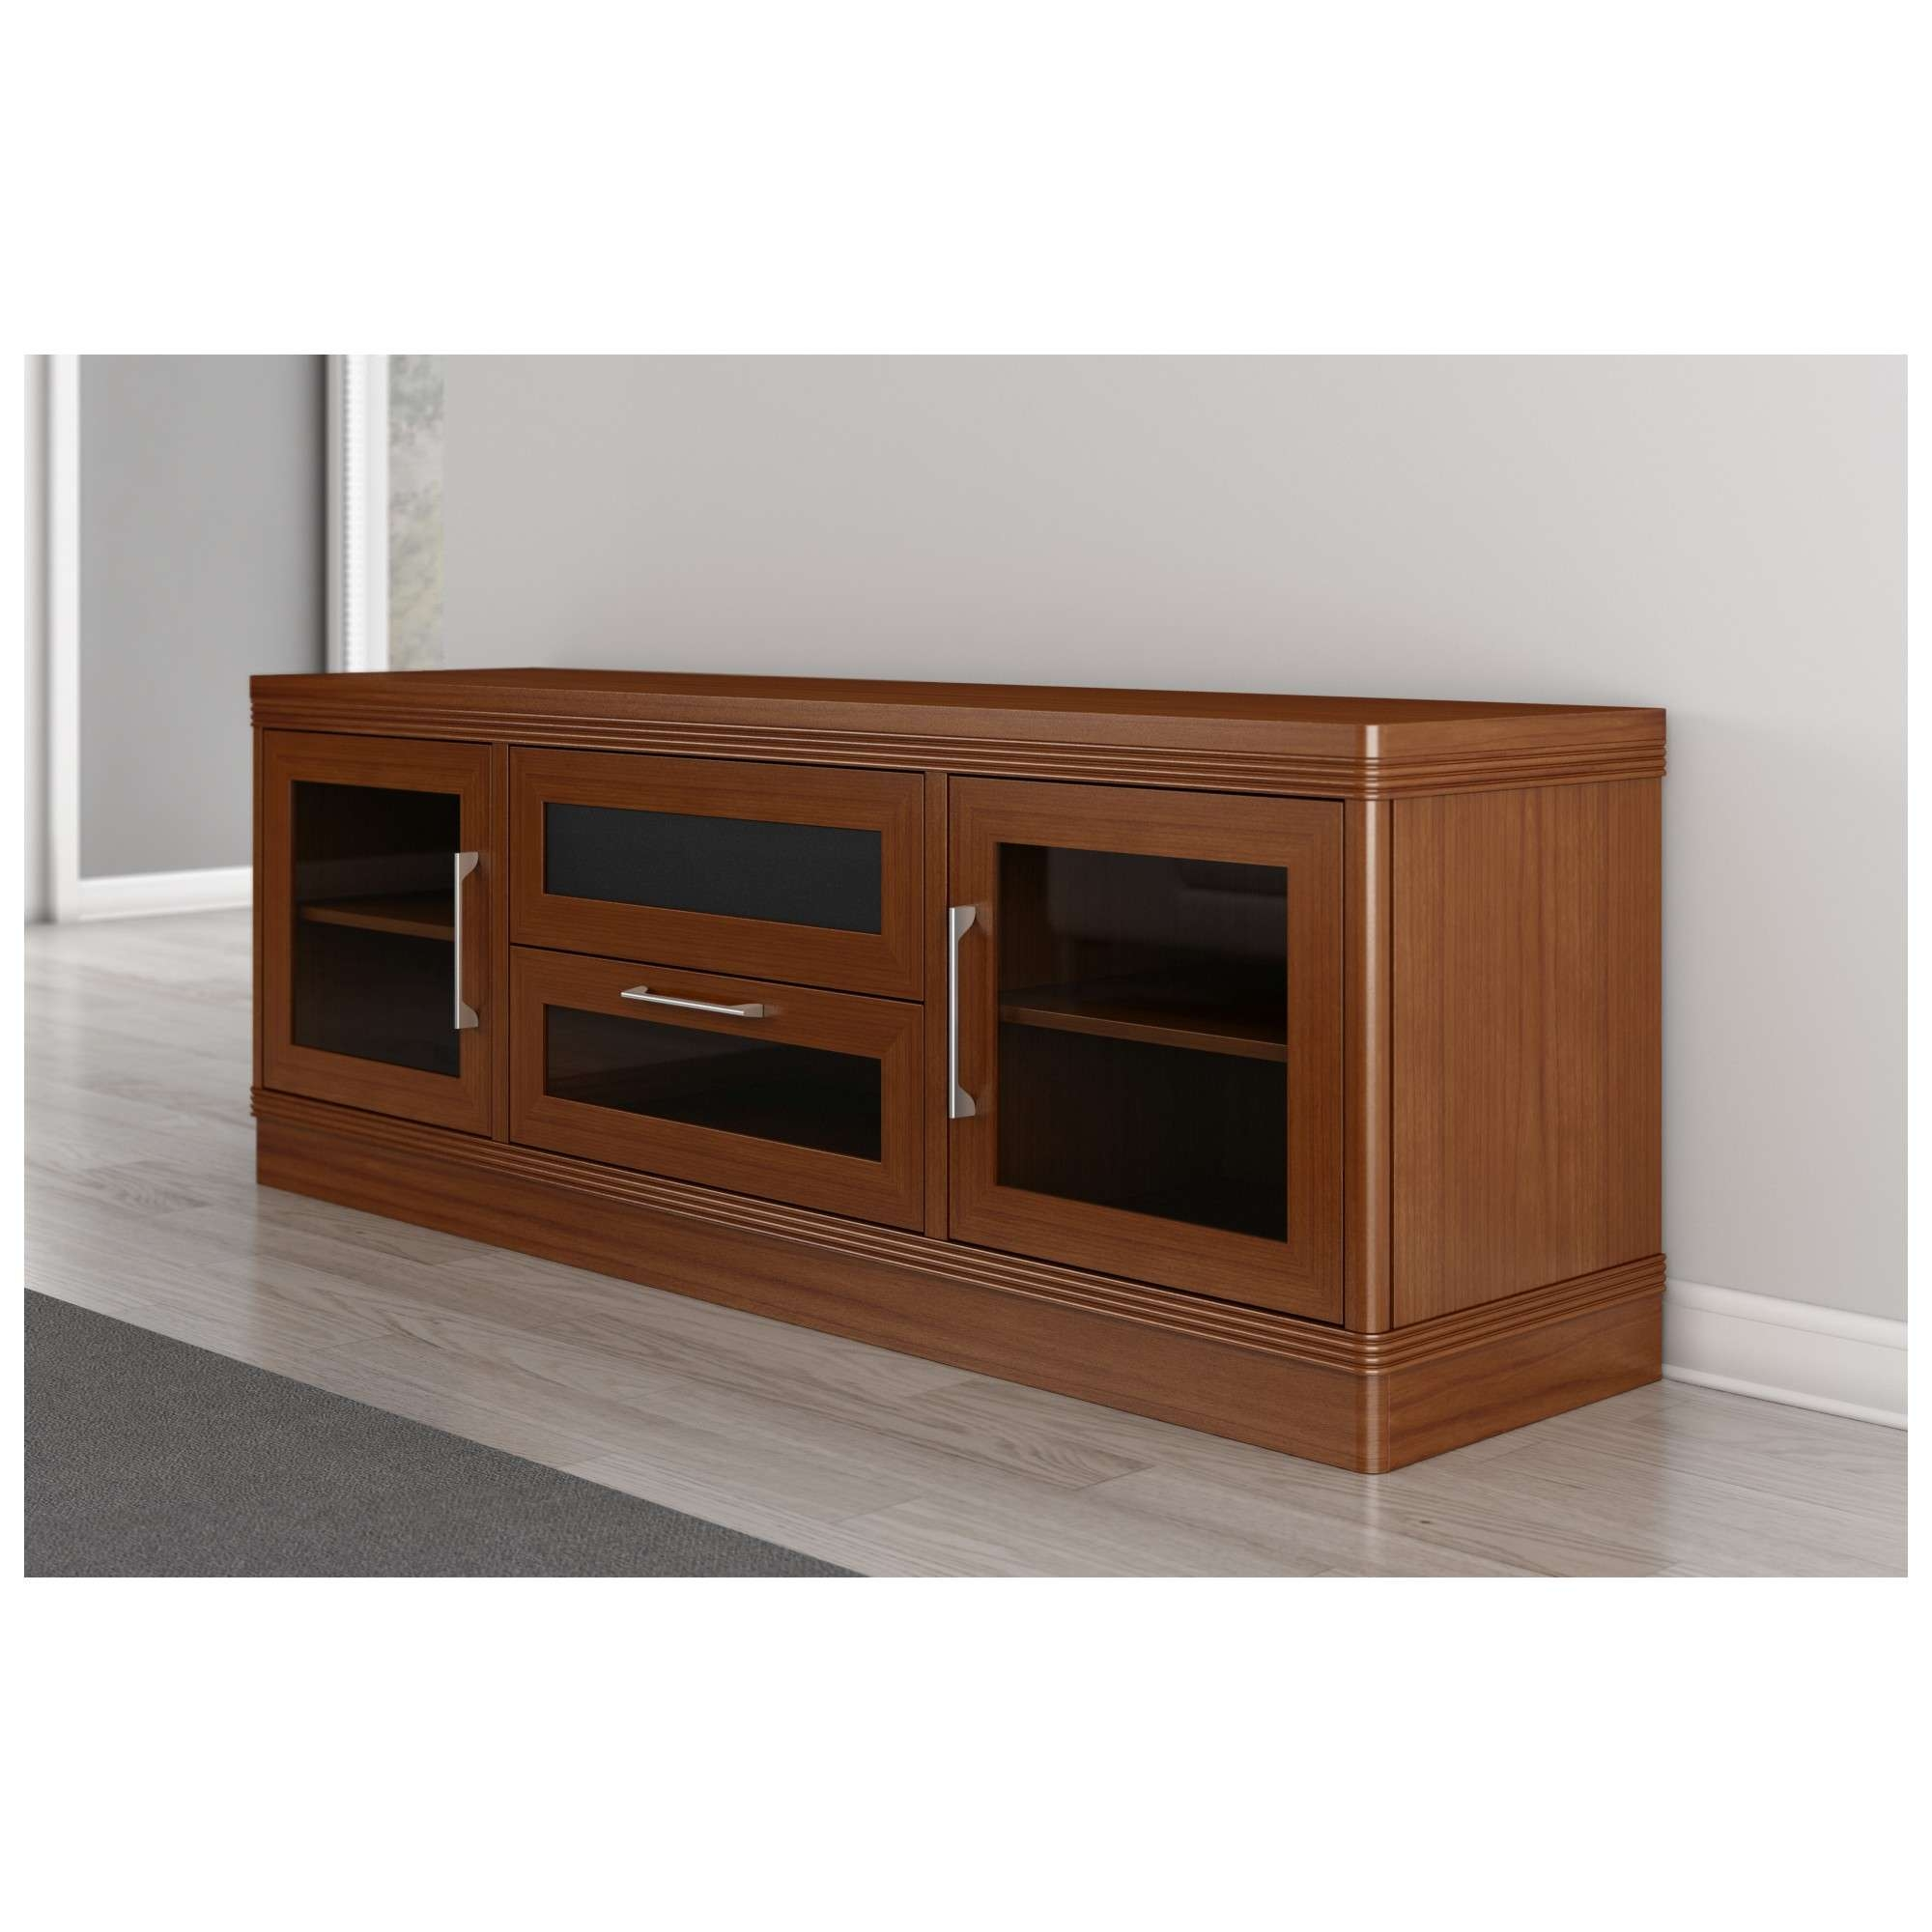 "Furnitech Ft72Trlc 70"" Tv Stand Traditional Media Cabinet W Throughout Light Cherry Tv Stands (View 3 of 15)"